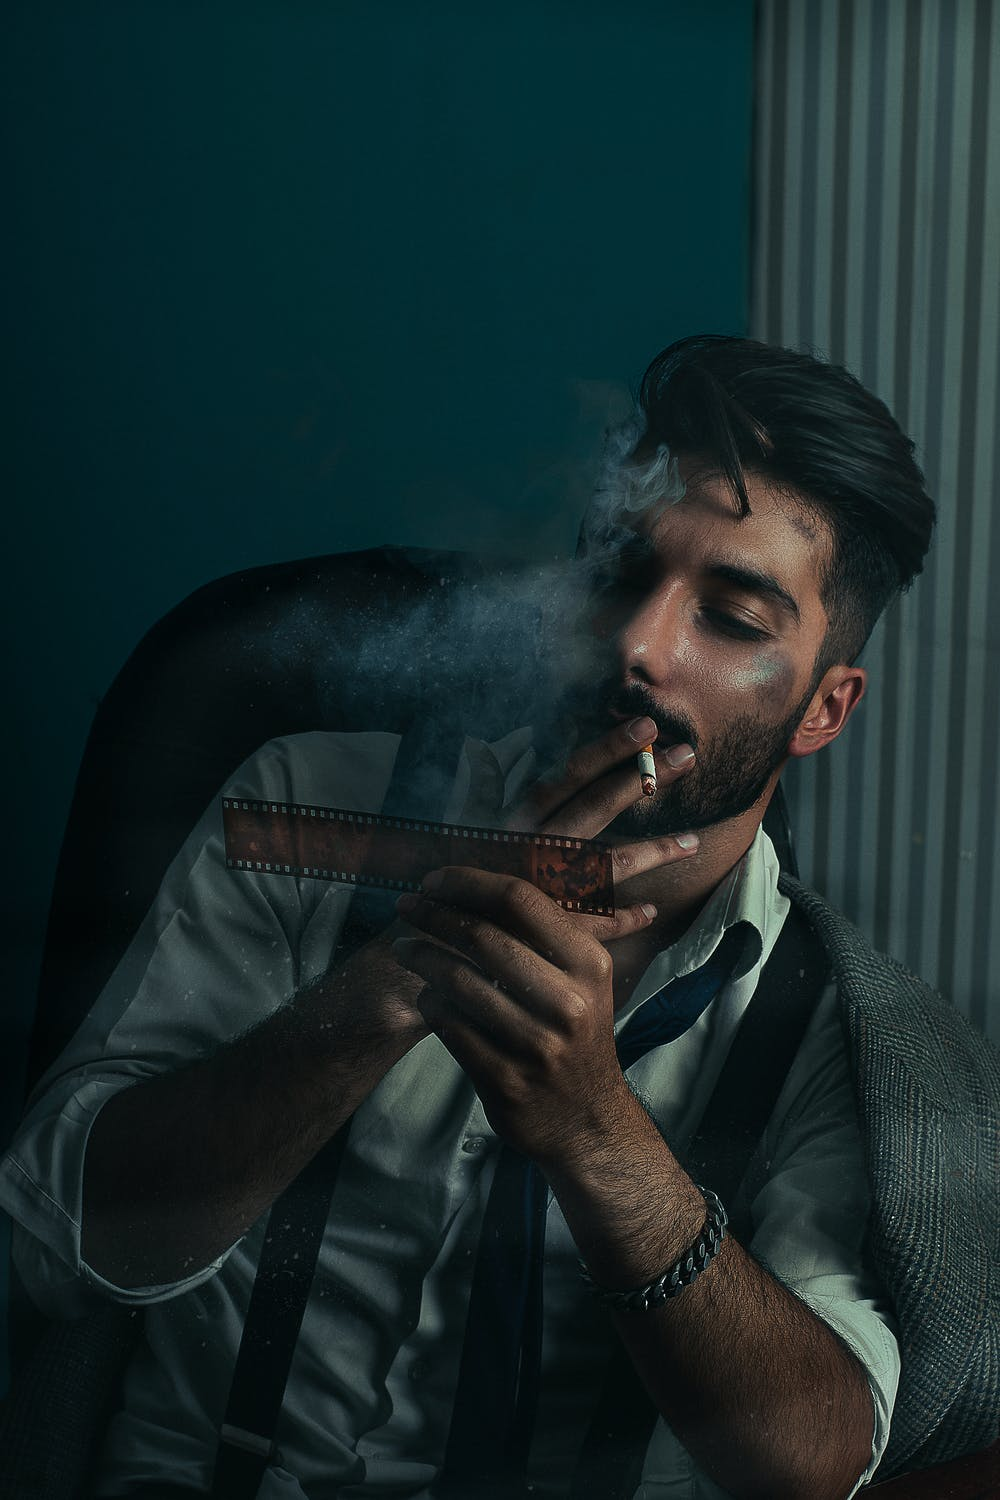 A young man smoking in dark room.